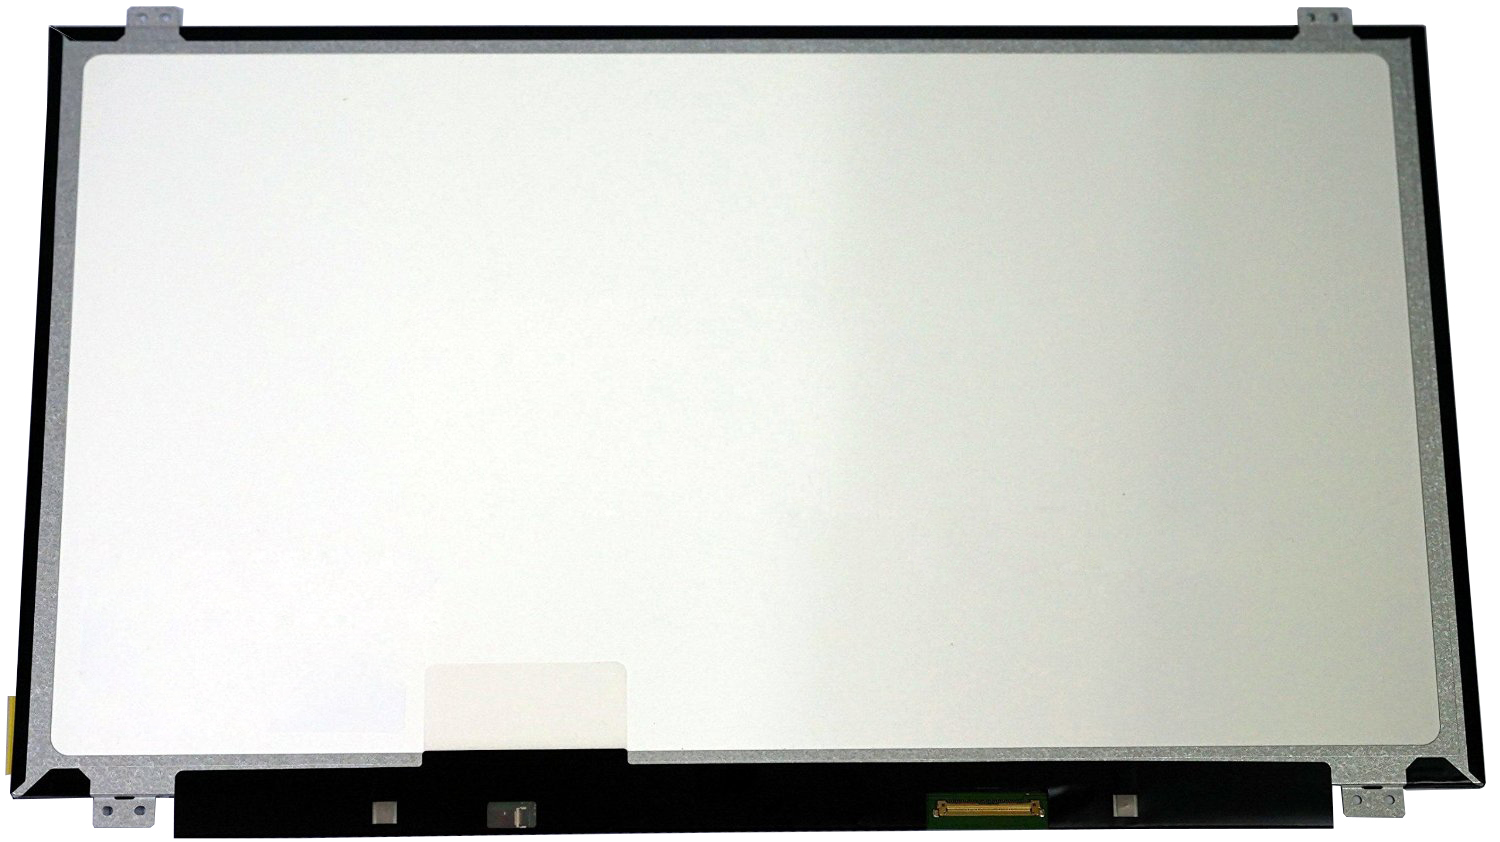 QuYing LAPTOP LCD SCREEN for acer ASPIRE 5820 5820T 5820TG 5742 5742G 5742Z 5830T 5830TG TIMELINEX SERIES (15.6